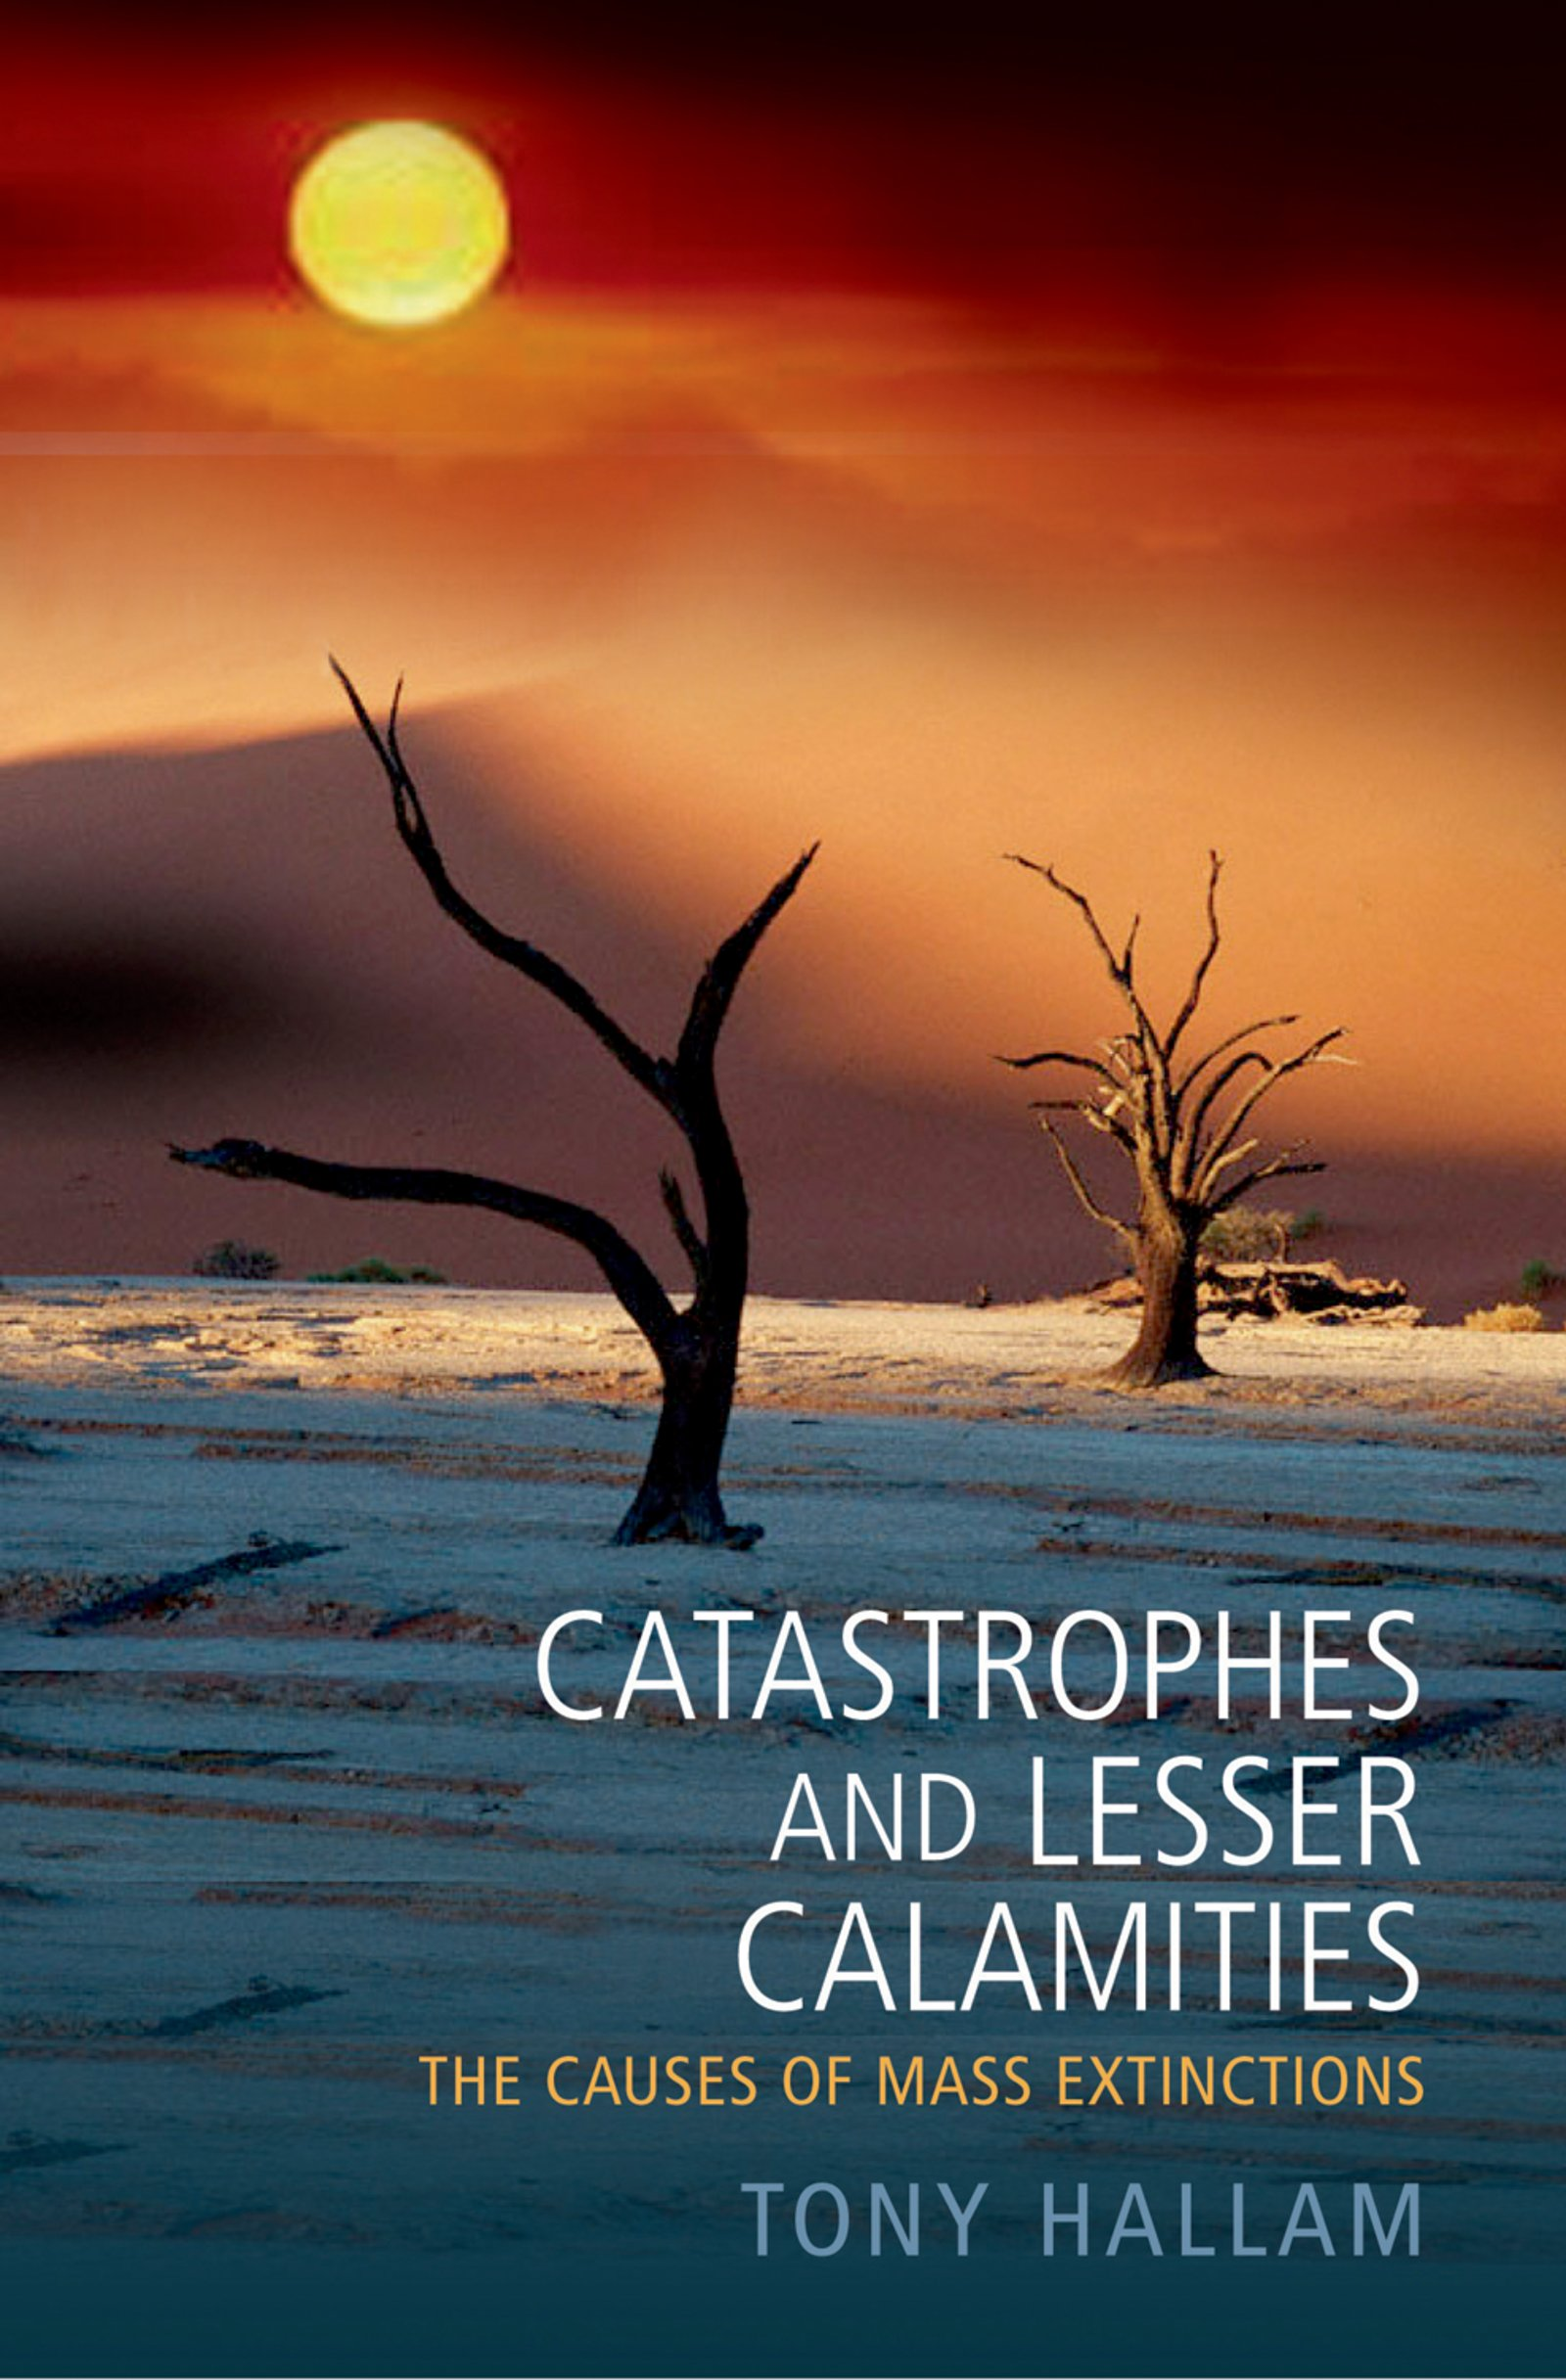 Catastrophes and Lesser CalamitiesThe causes of mass extinctions